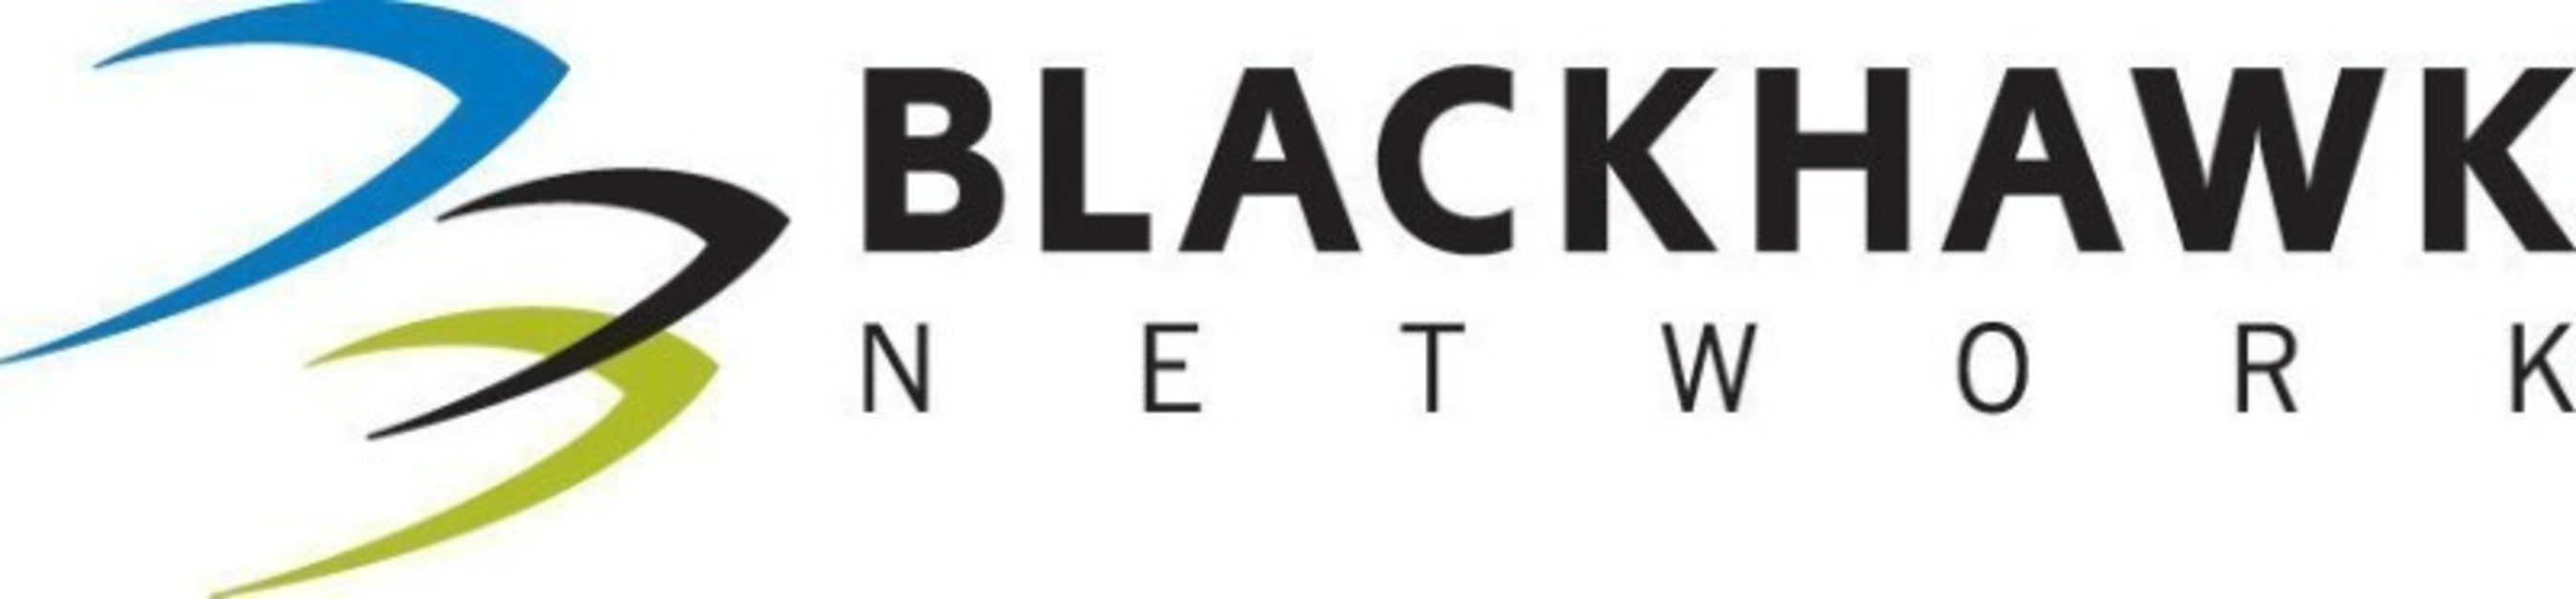 Blackhawk Network Holdings, Inc. Announces Pricing of $460 Million of Convertible Notes Due 2022